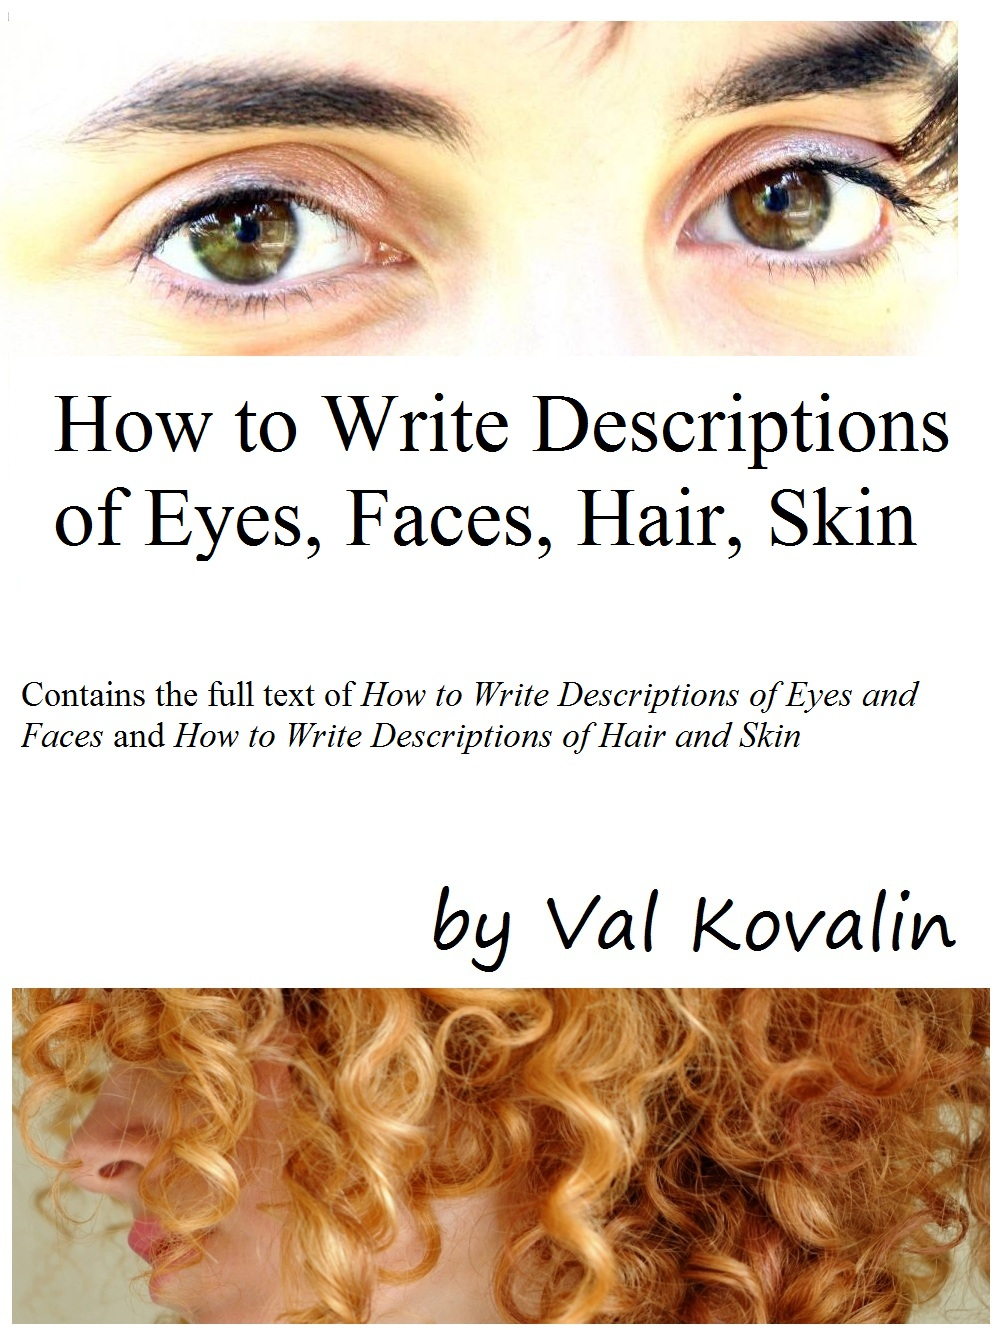 How To Write Descriptions Of Eyes Faces Hair Skin Is A Unabridged Collection The Two Books Described Below And